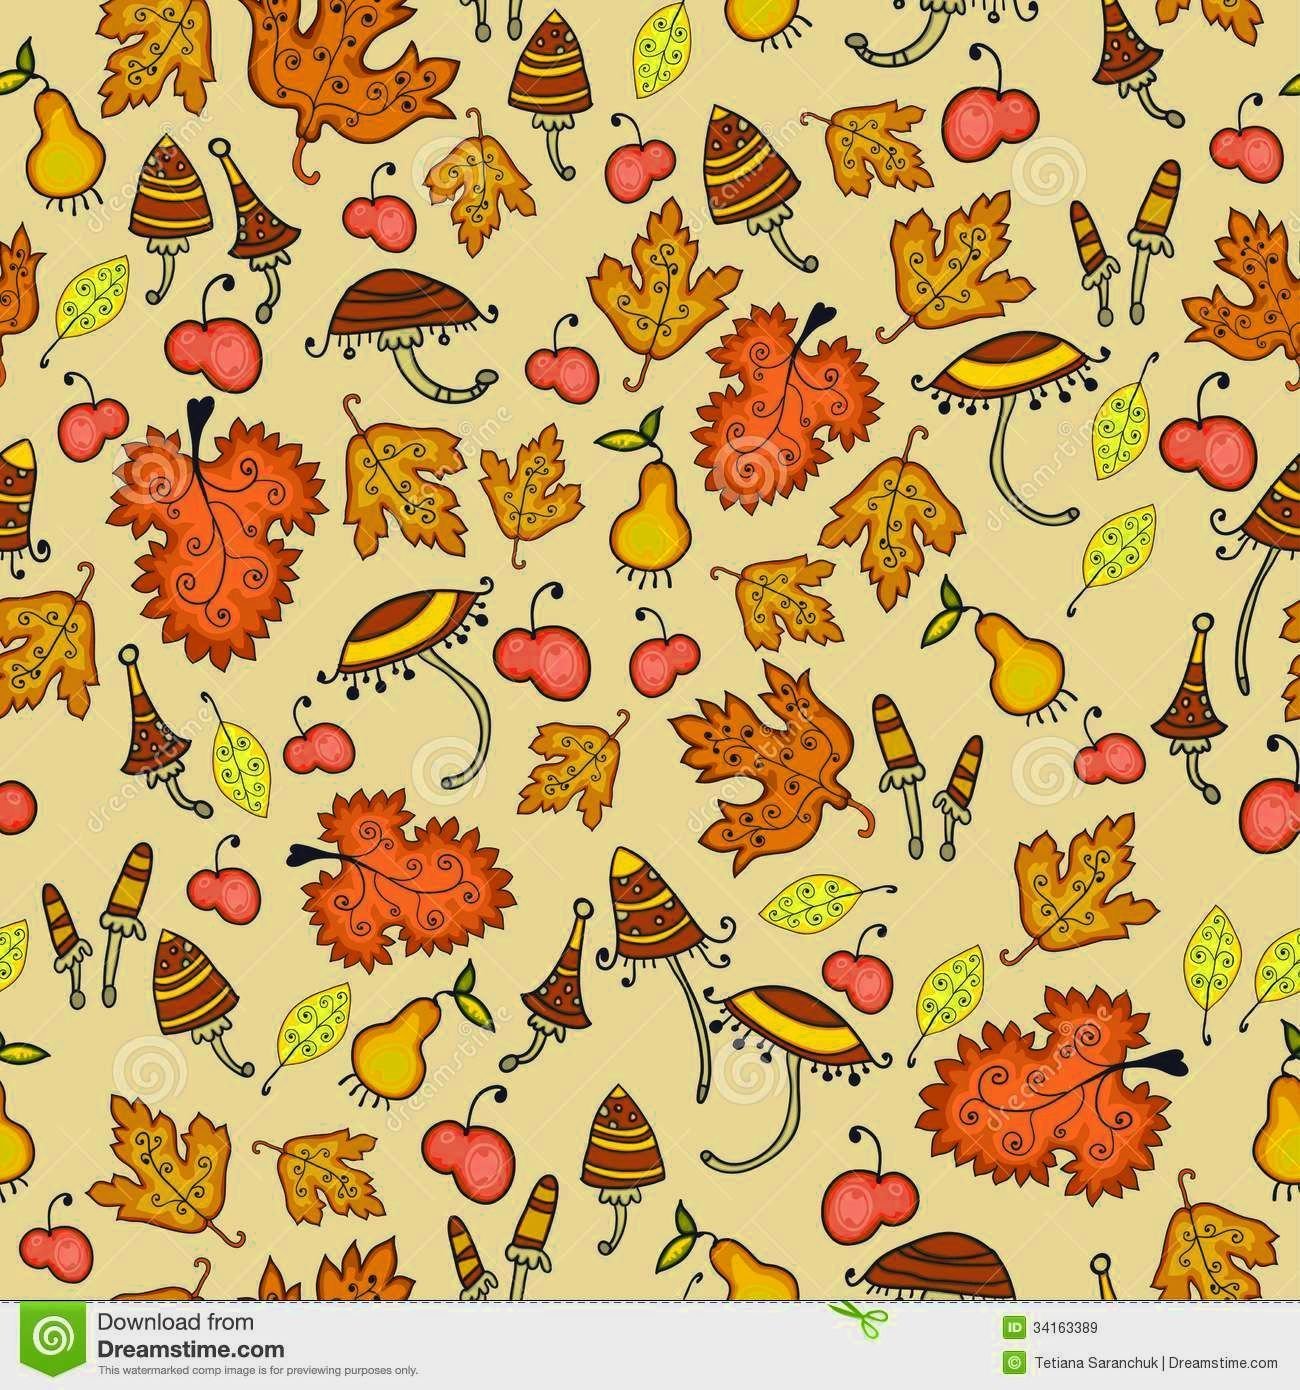 Cute Fall Backgrounds | Season Wallpaper | Pinterest | Hd ...